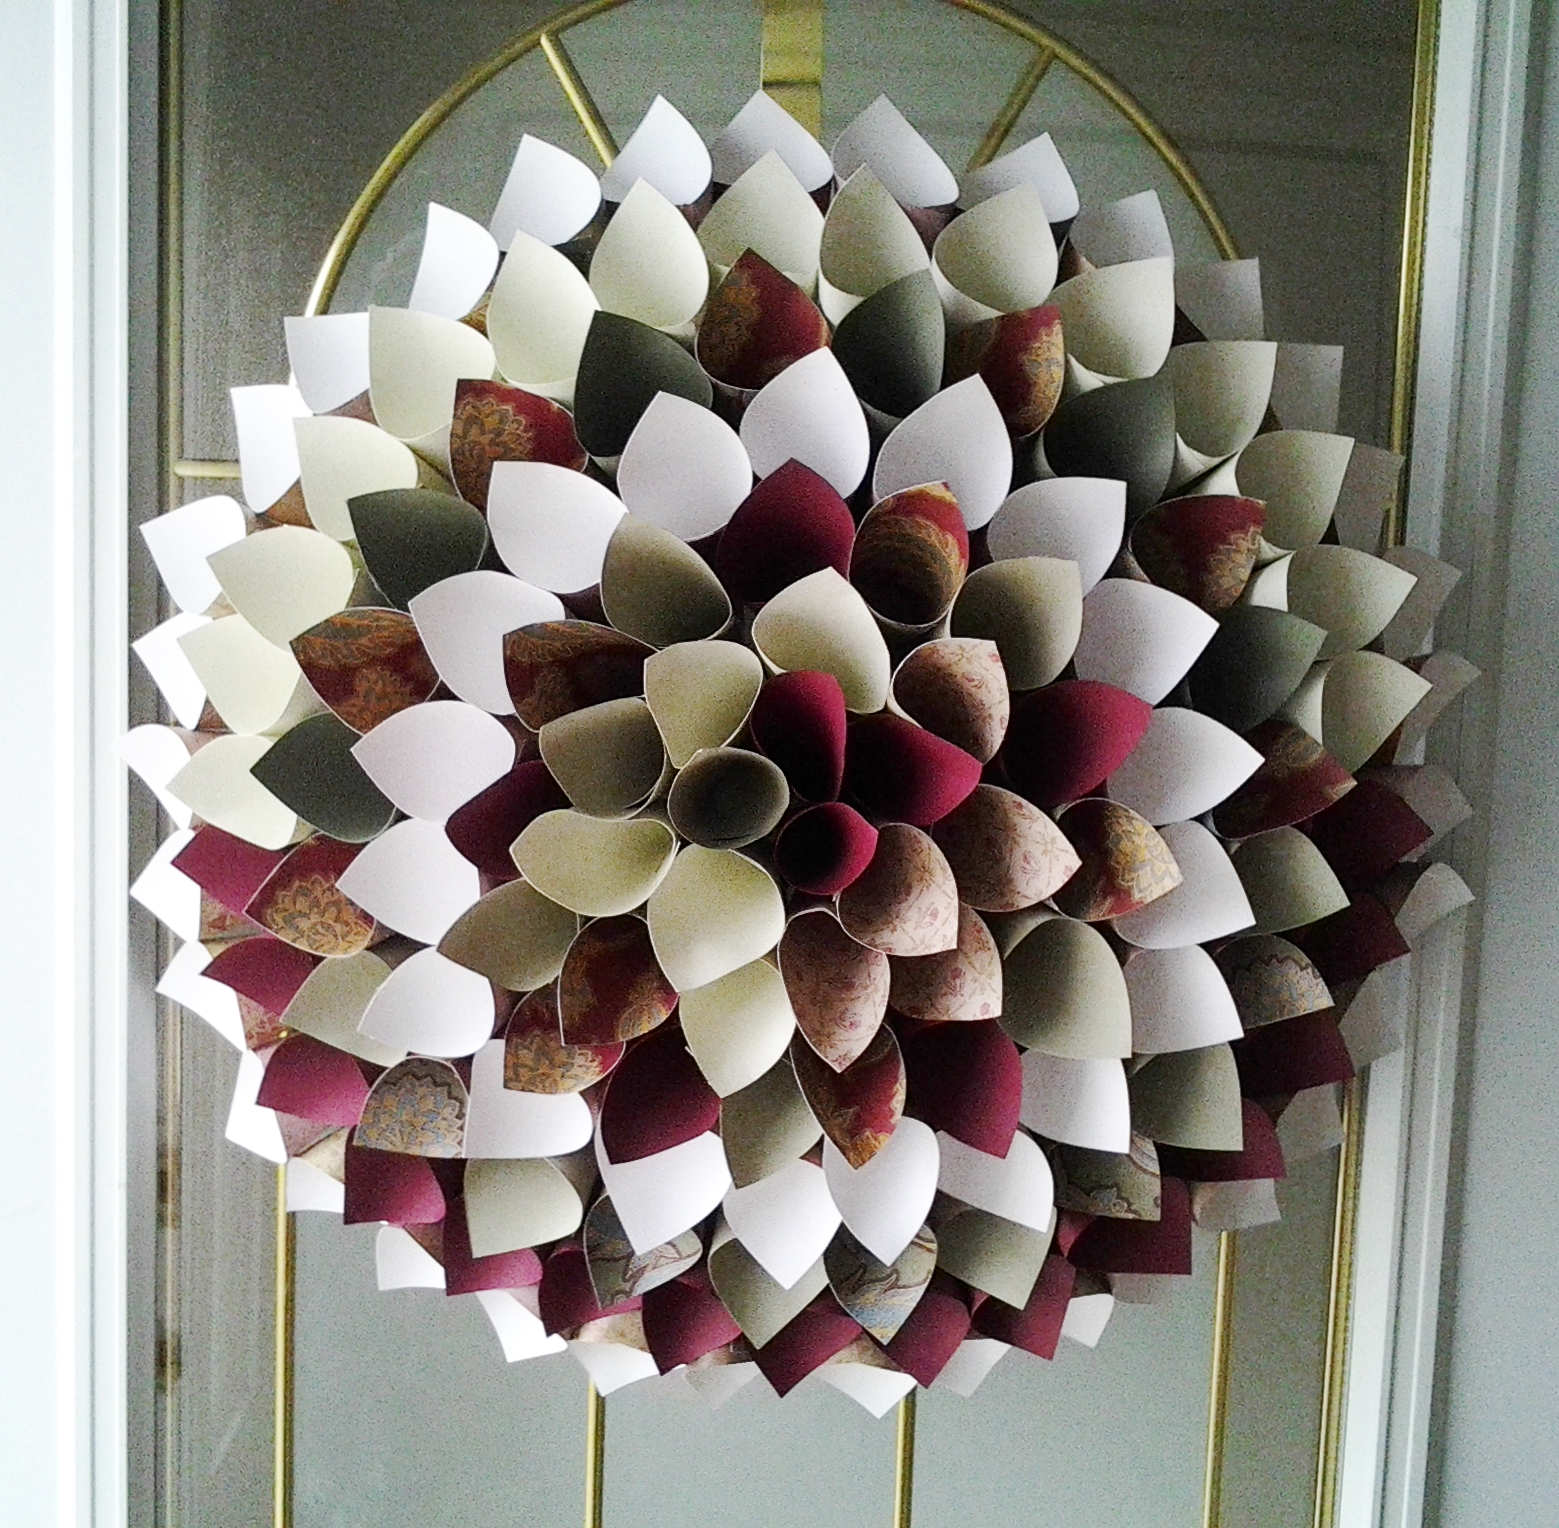 Paper cones for flowers gallery flower decoration ideas paper cone flower image collections flower decoration ideas paper cones for flowers images flower decoration ideas mightylinksfo